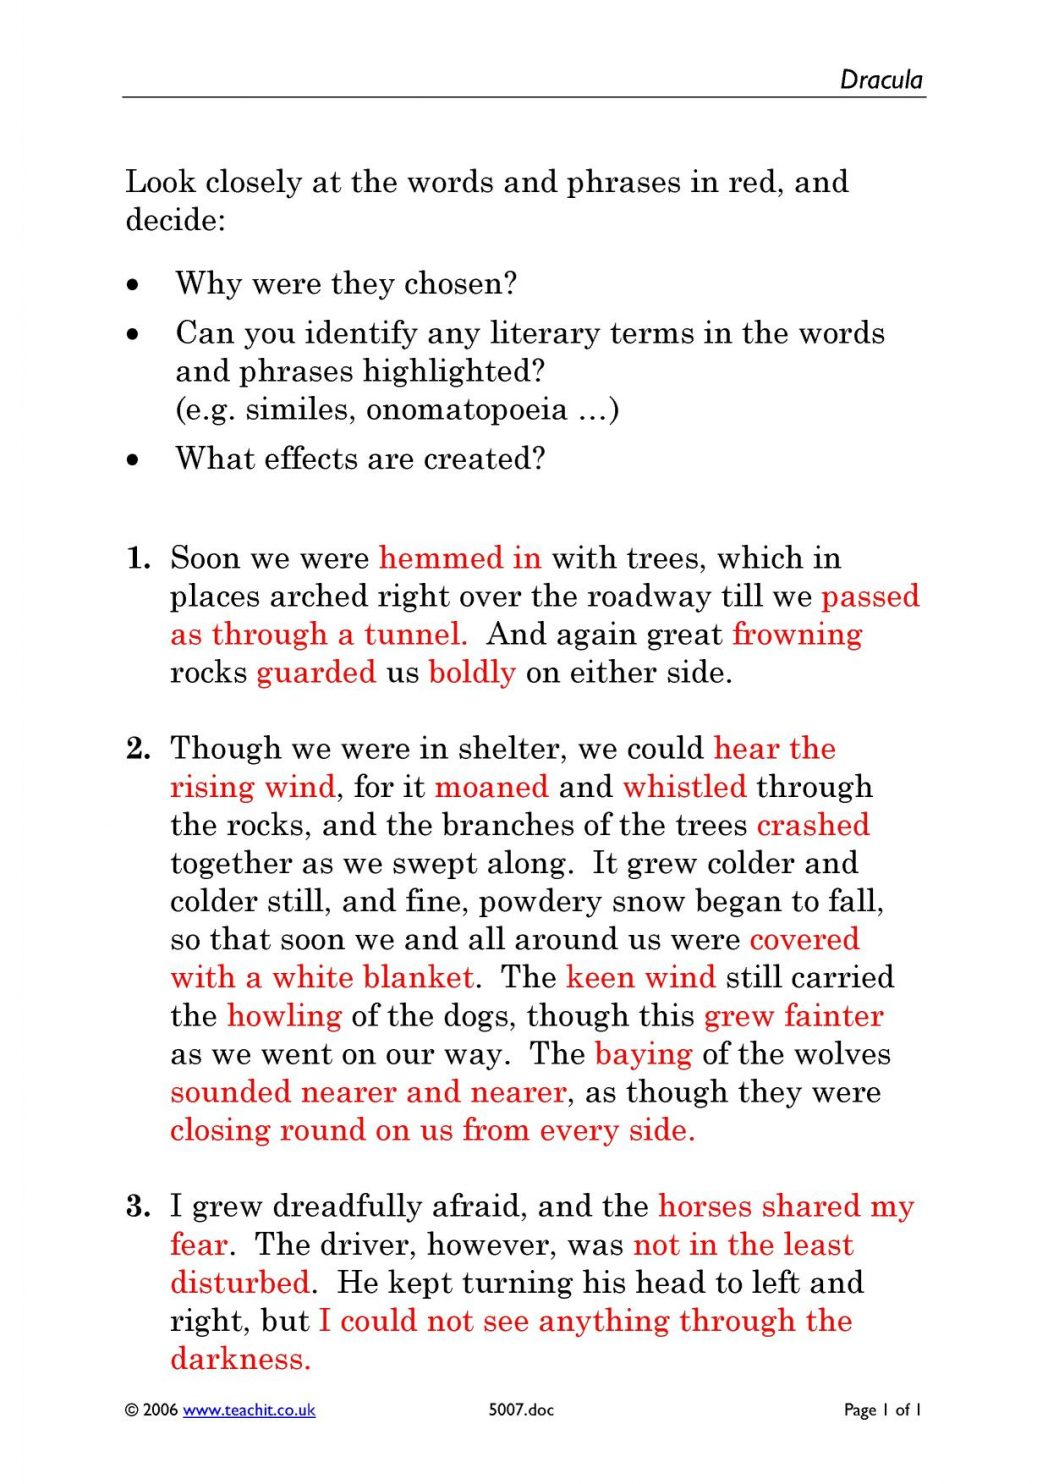 011 Essay On Stage Fear Dracula By Bram Stoker Ks4 Prose Key Resources Page Example Awful Write An Overcoming Full